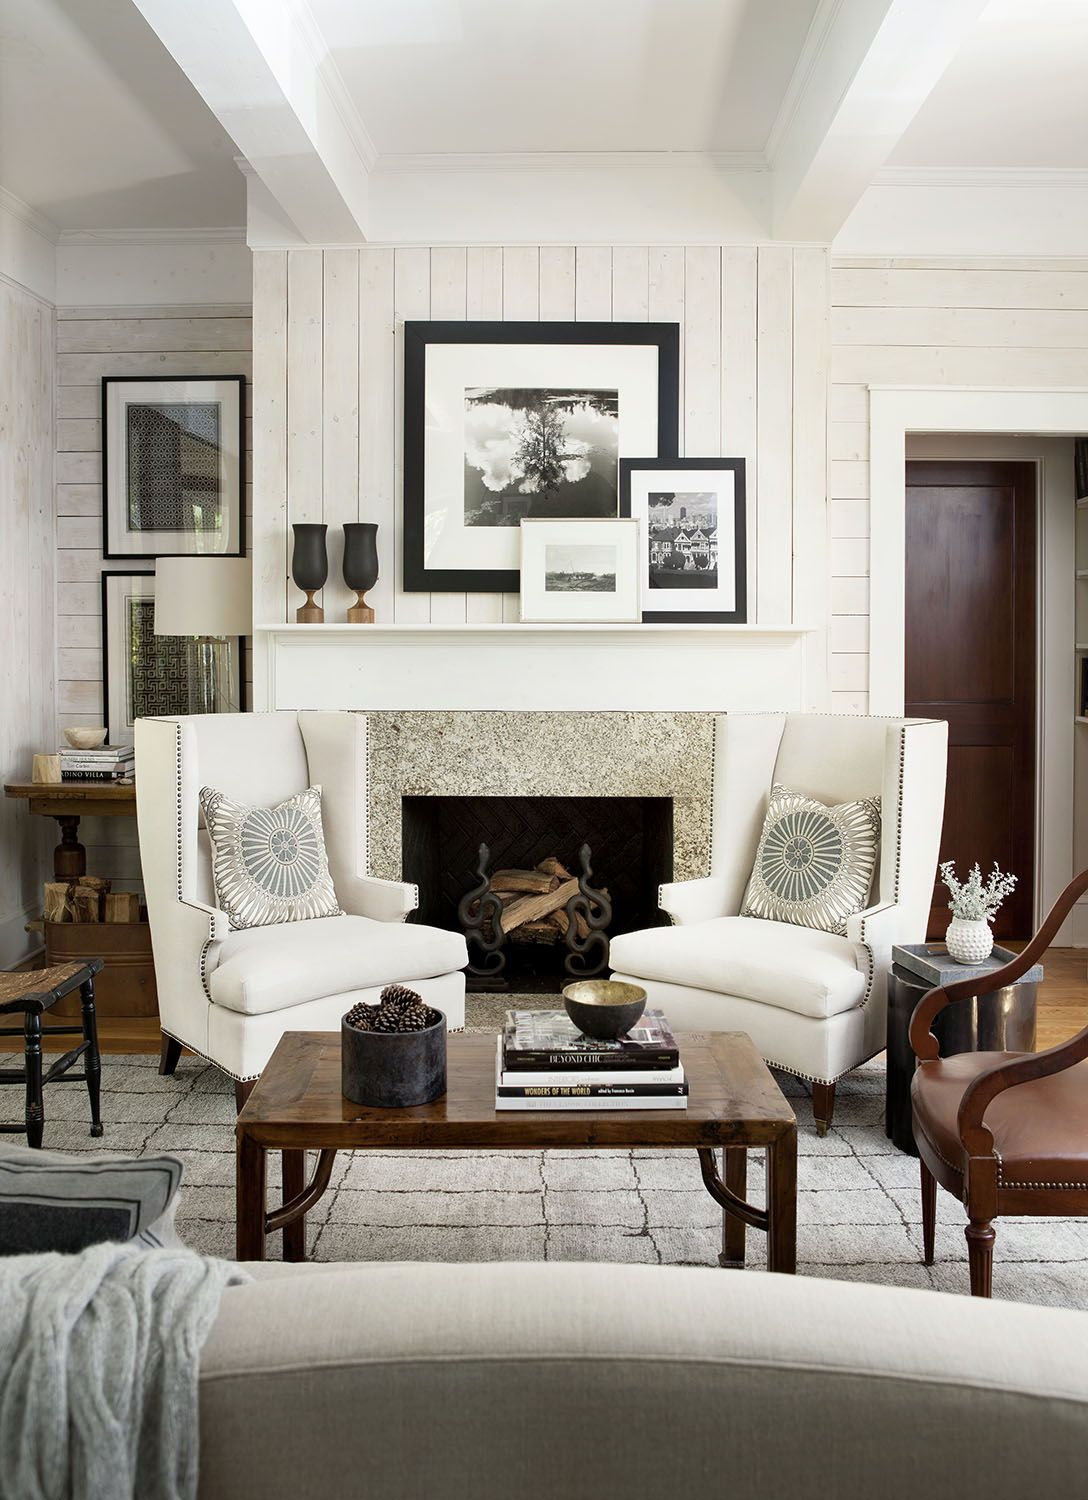 20 Cozy Corner Fireplace Ideas for Your Living Room | Brown interior ...